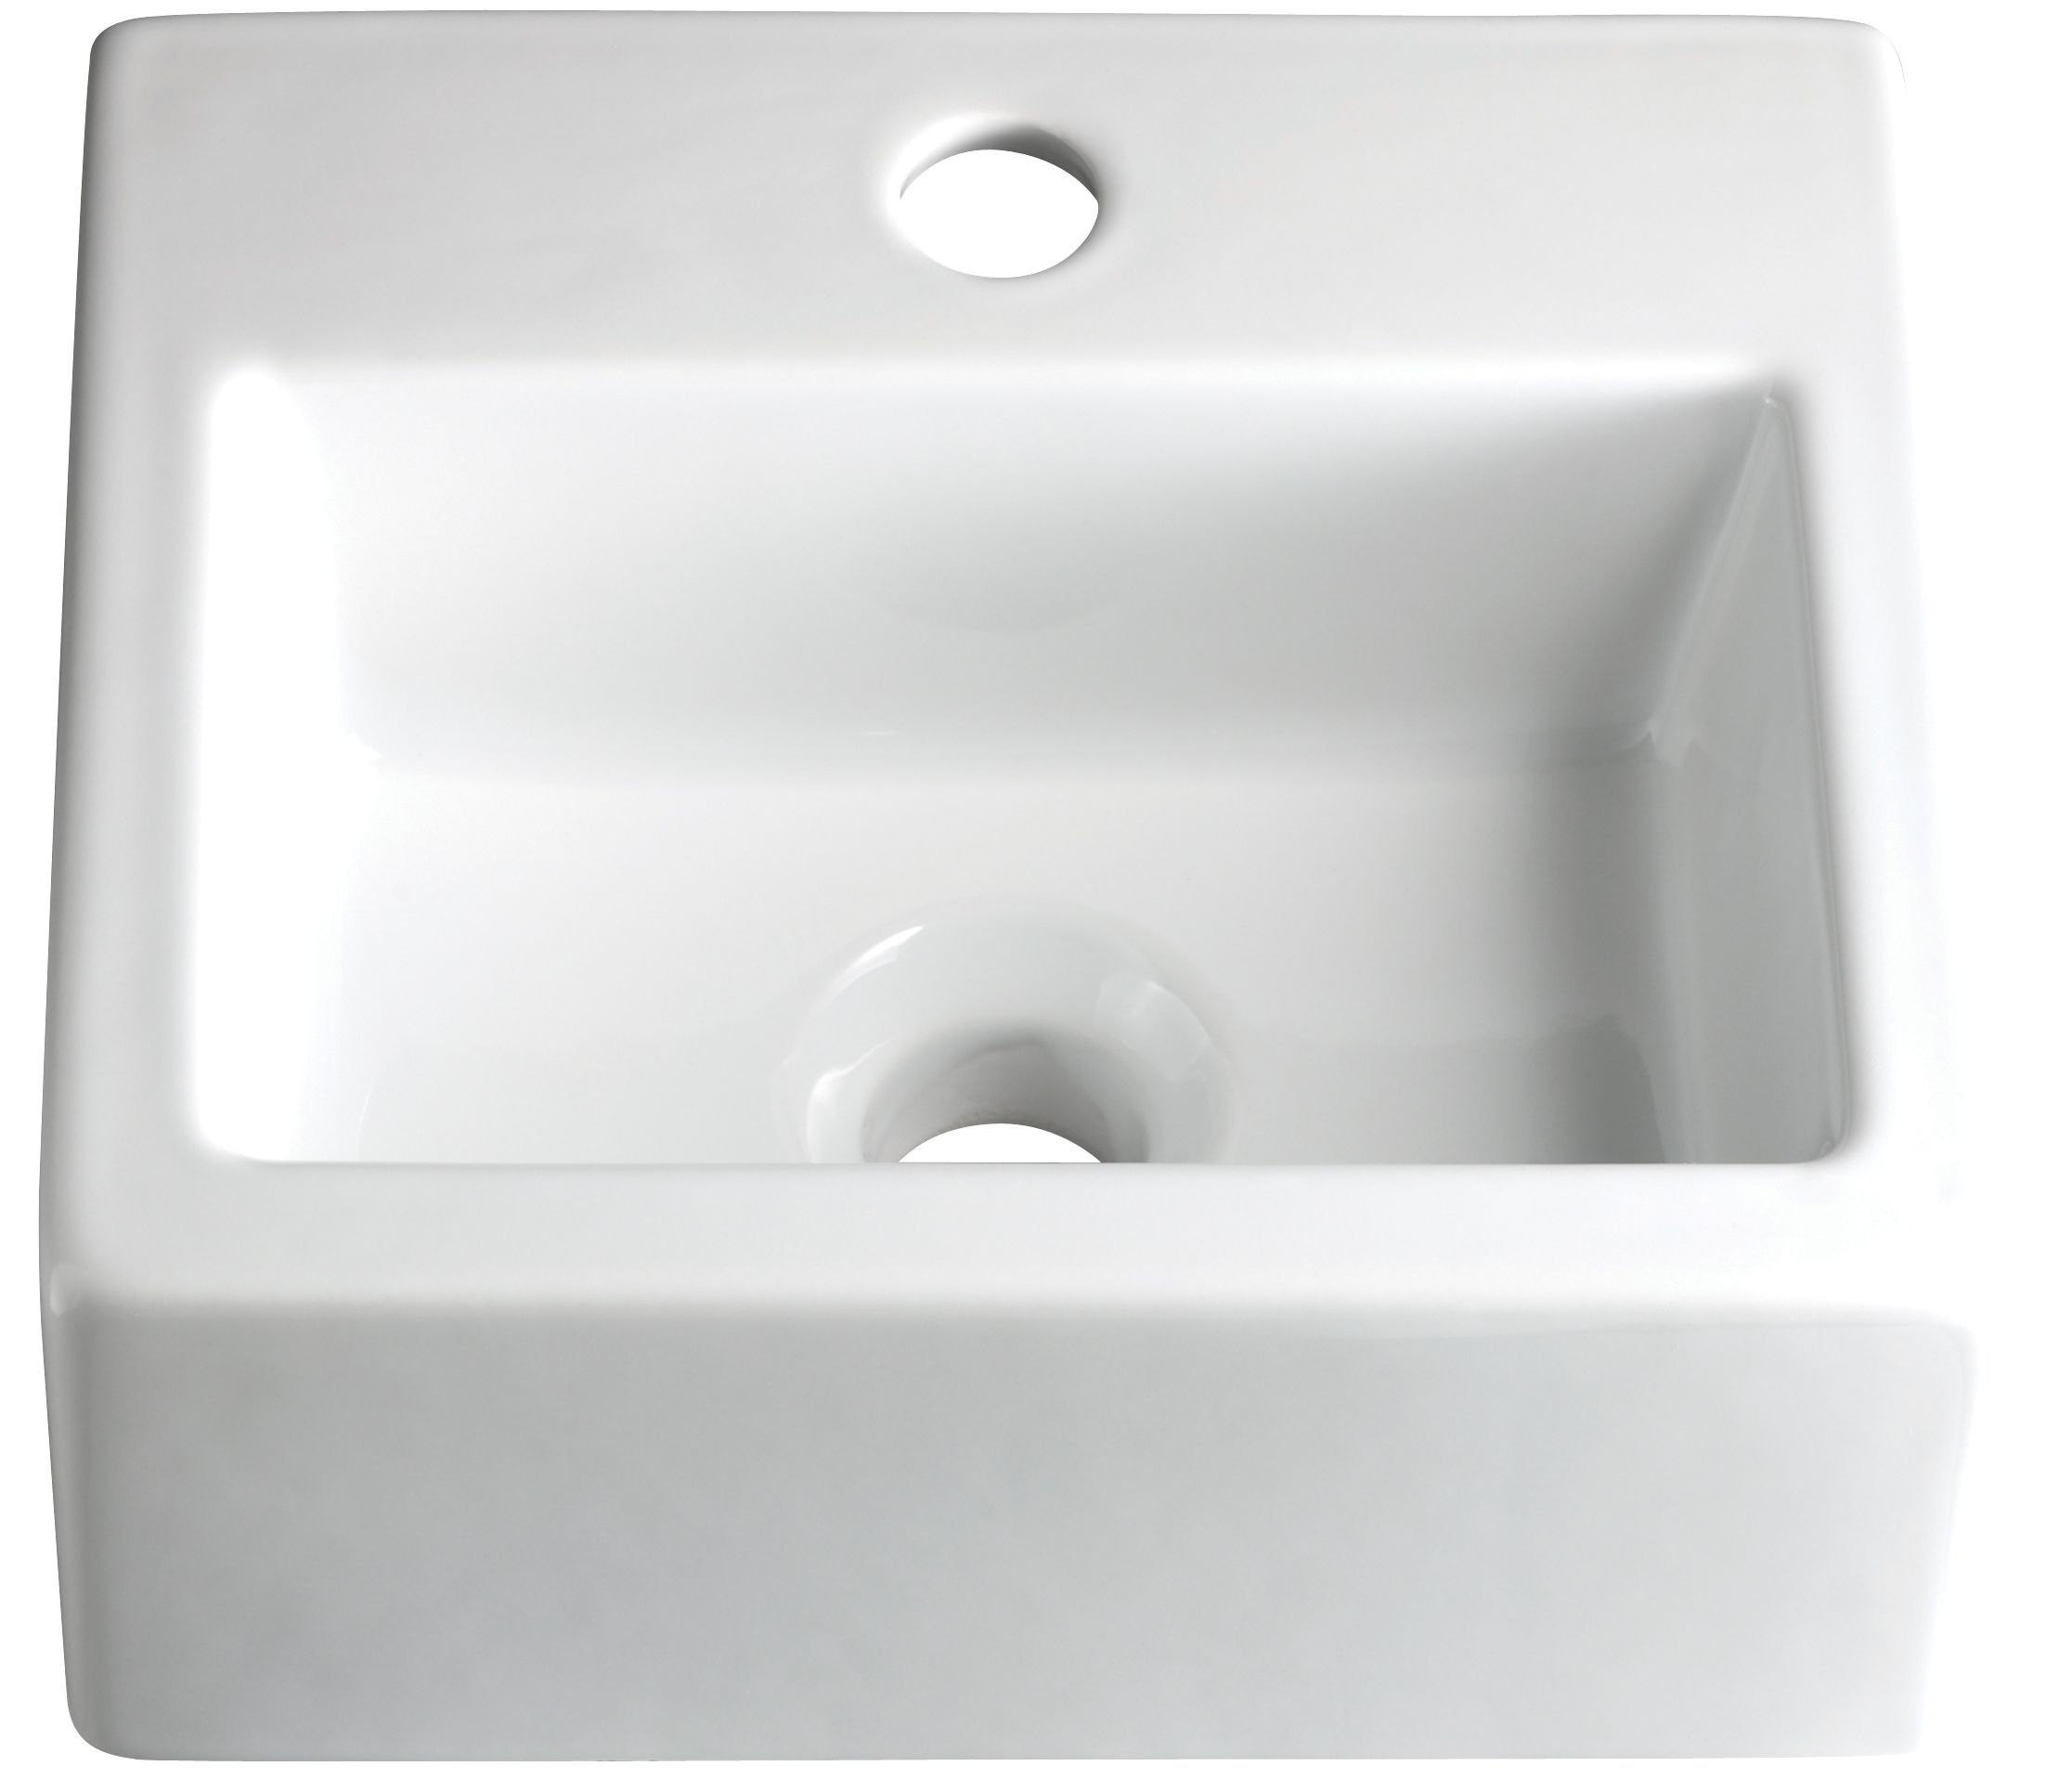 Cooke Amp Lewis Square Compact Countertop Basin